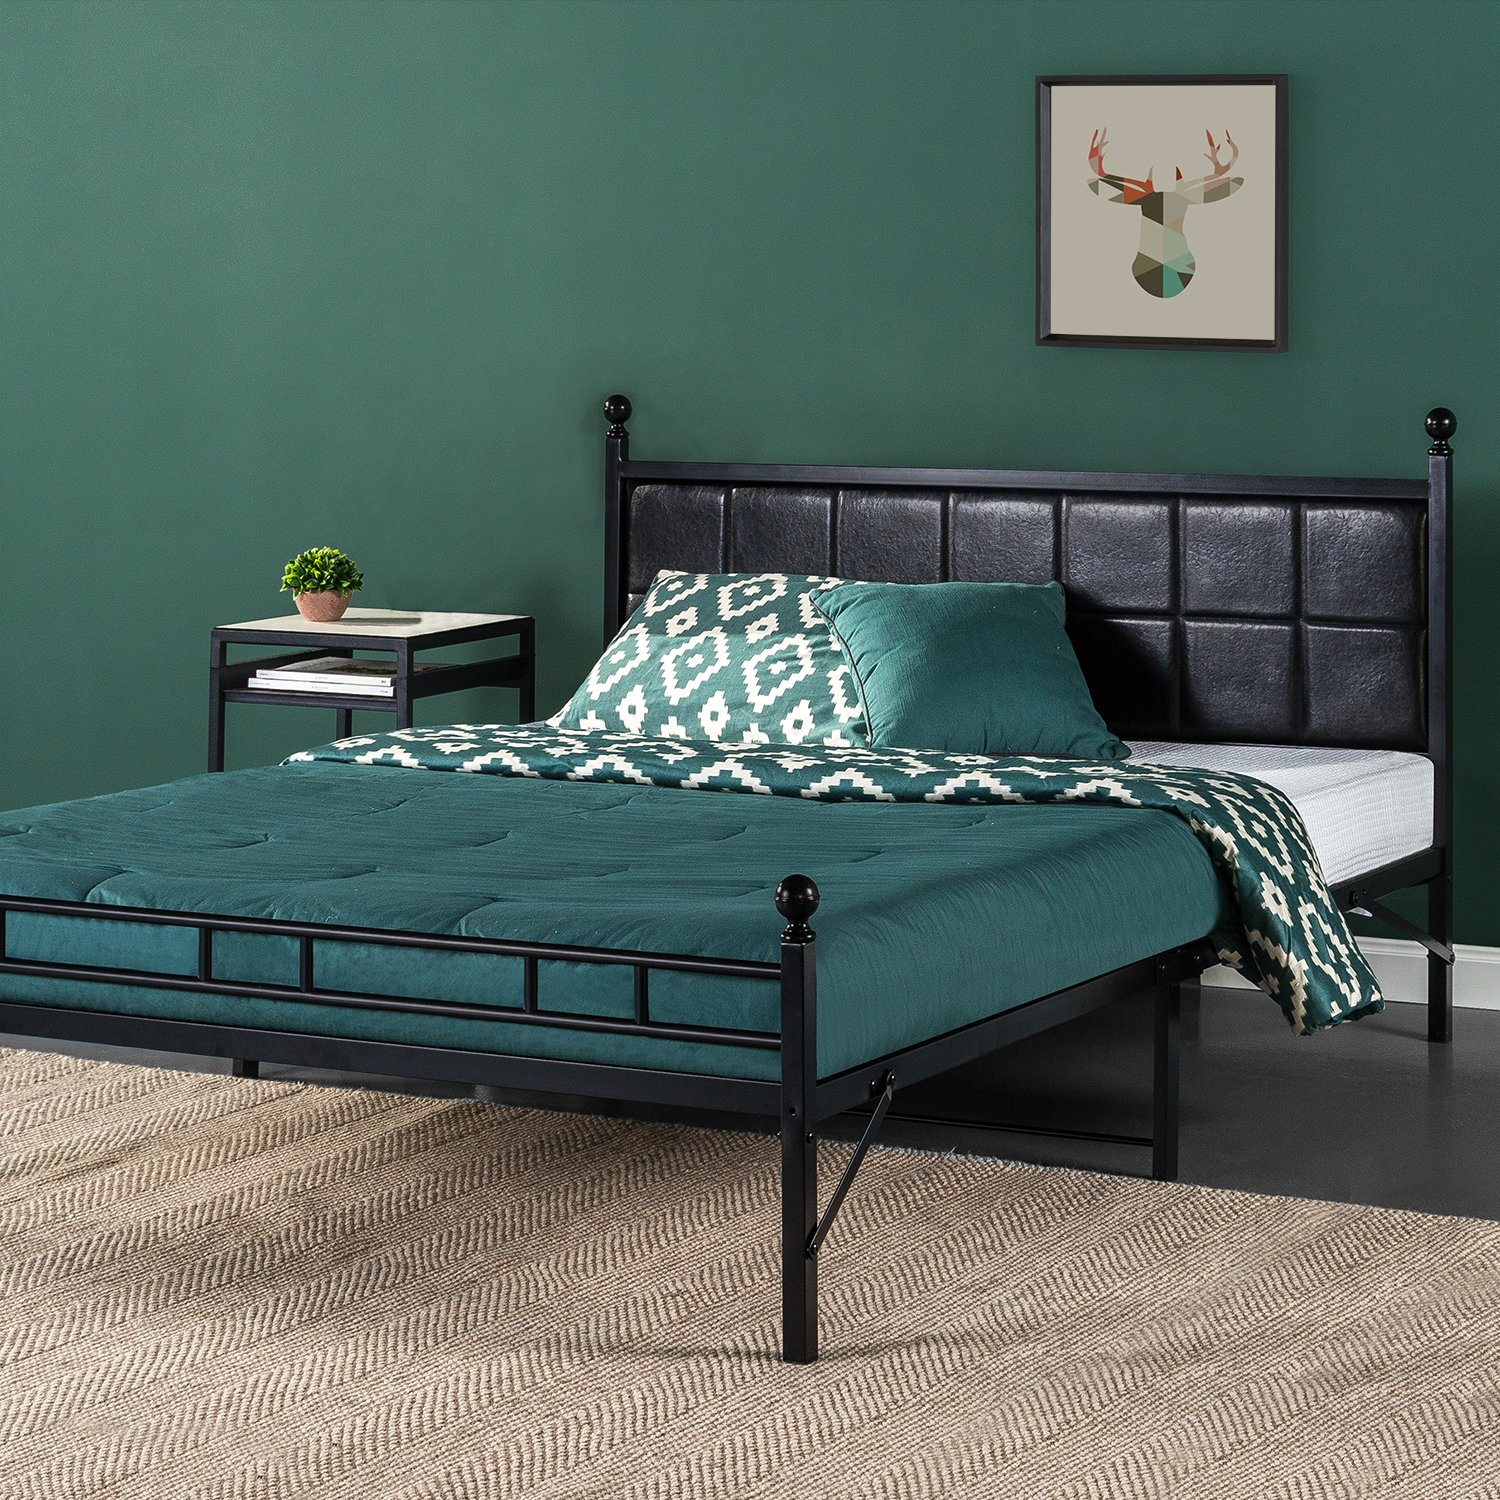 Zinus Sumit Metal Platform Bed Bed Frame with Faux Leather Square Stitched Upholstered Headboard, Twin XL